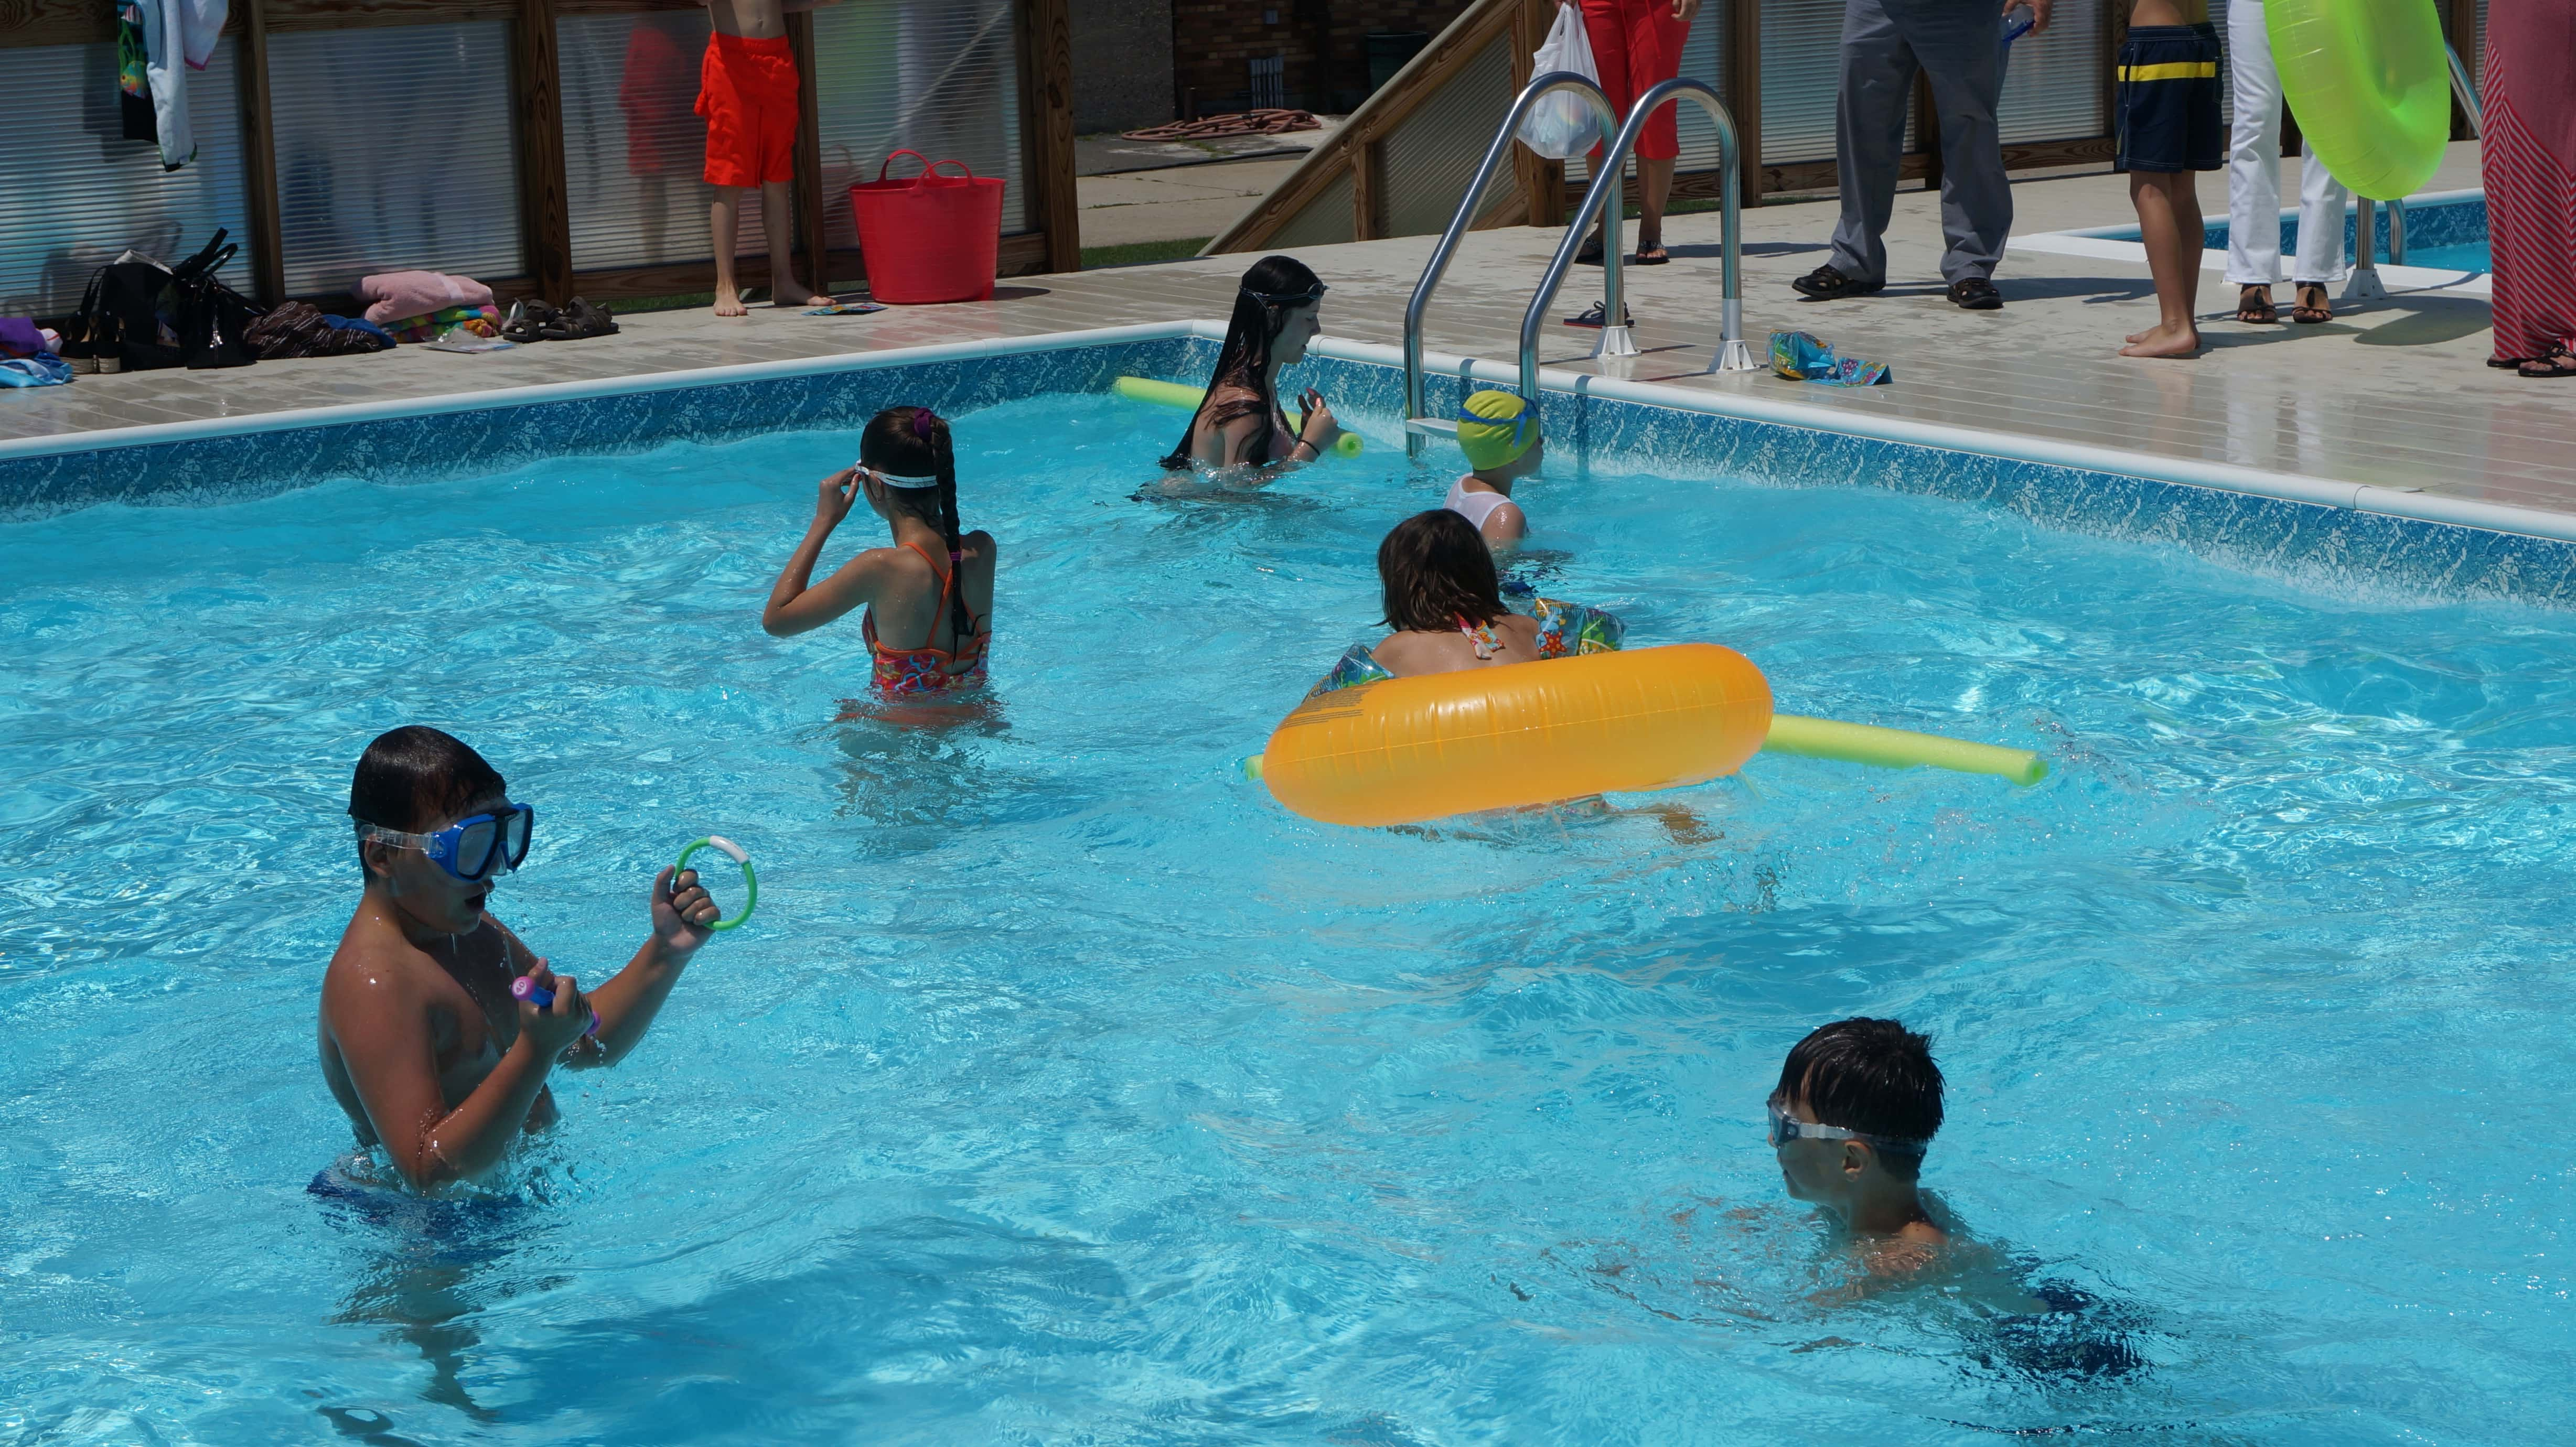 Pool parties for kids 39 birthdays aviator sports brooklyn ny - How to make a pool party ...